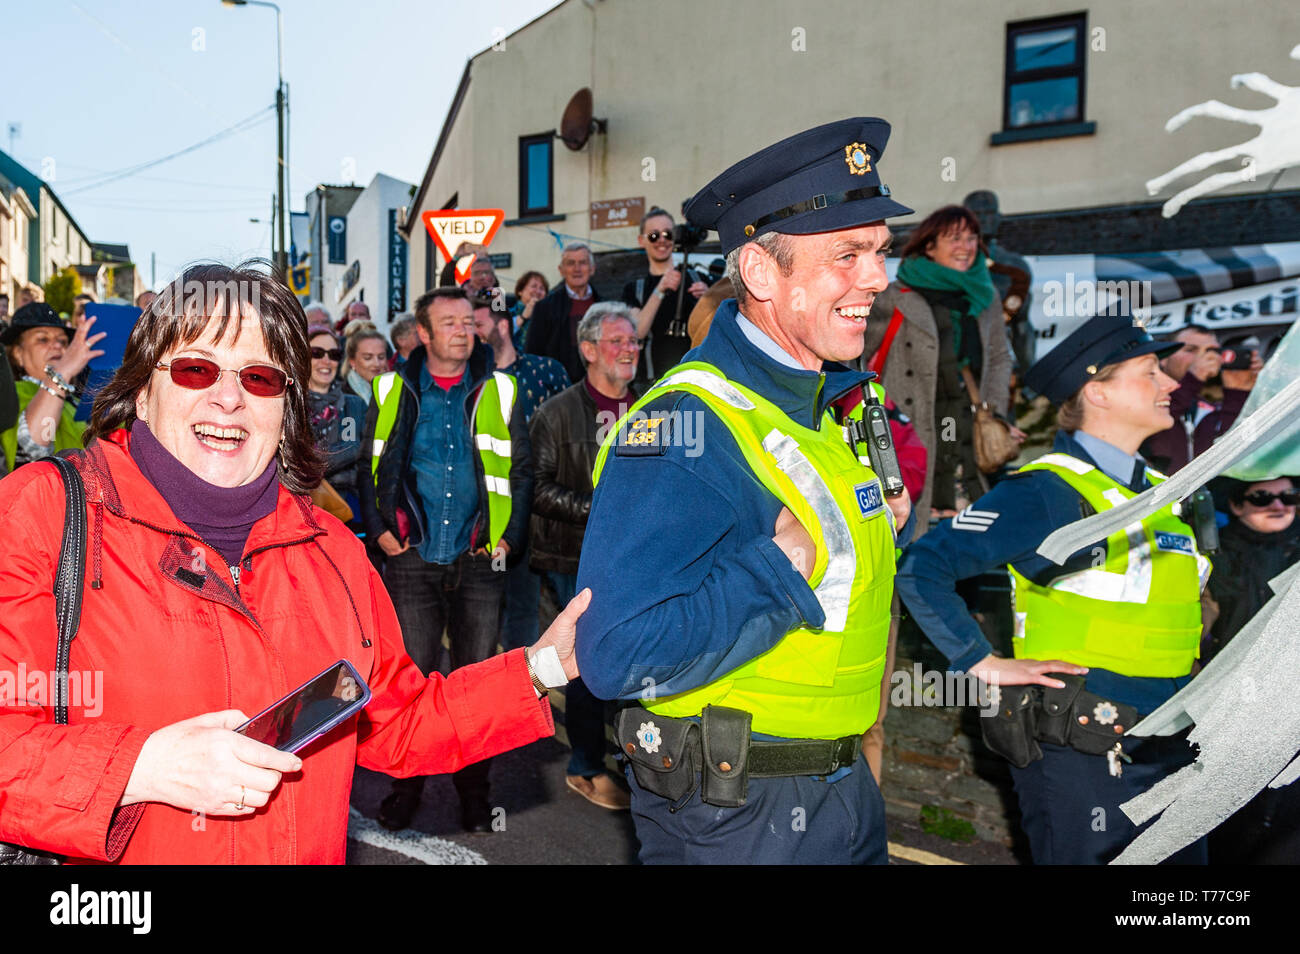 ballydehob-west-cork-ireland-4th-may-2019-the-new-orleans-style-jazz-funeral-took-place-this-evening-as-part-of-the-annual-ballydehob-jazz-festival-the-local-gardai-appeared-to-be-enjoying-the-parade-credit-andy-gibsonalamy-live-news-T77C9F.jpg